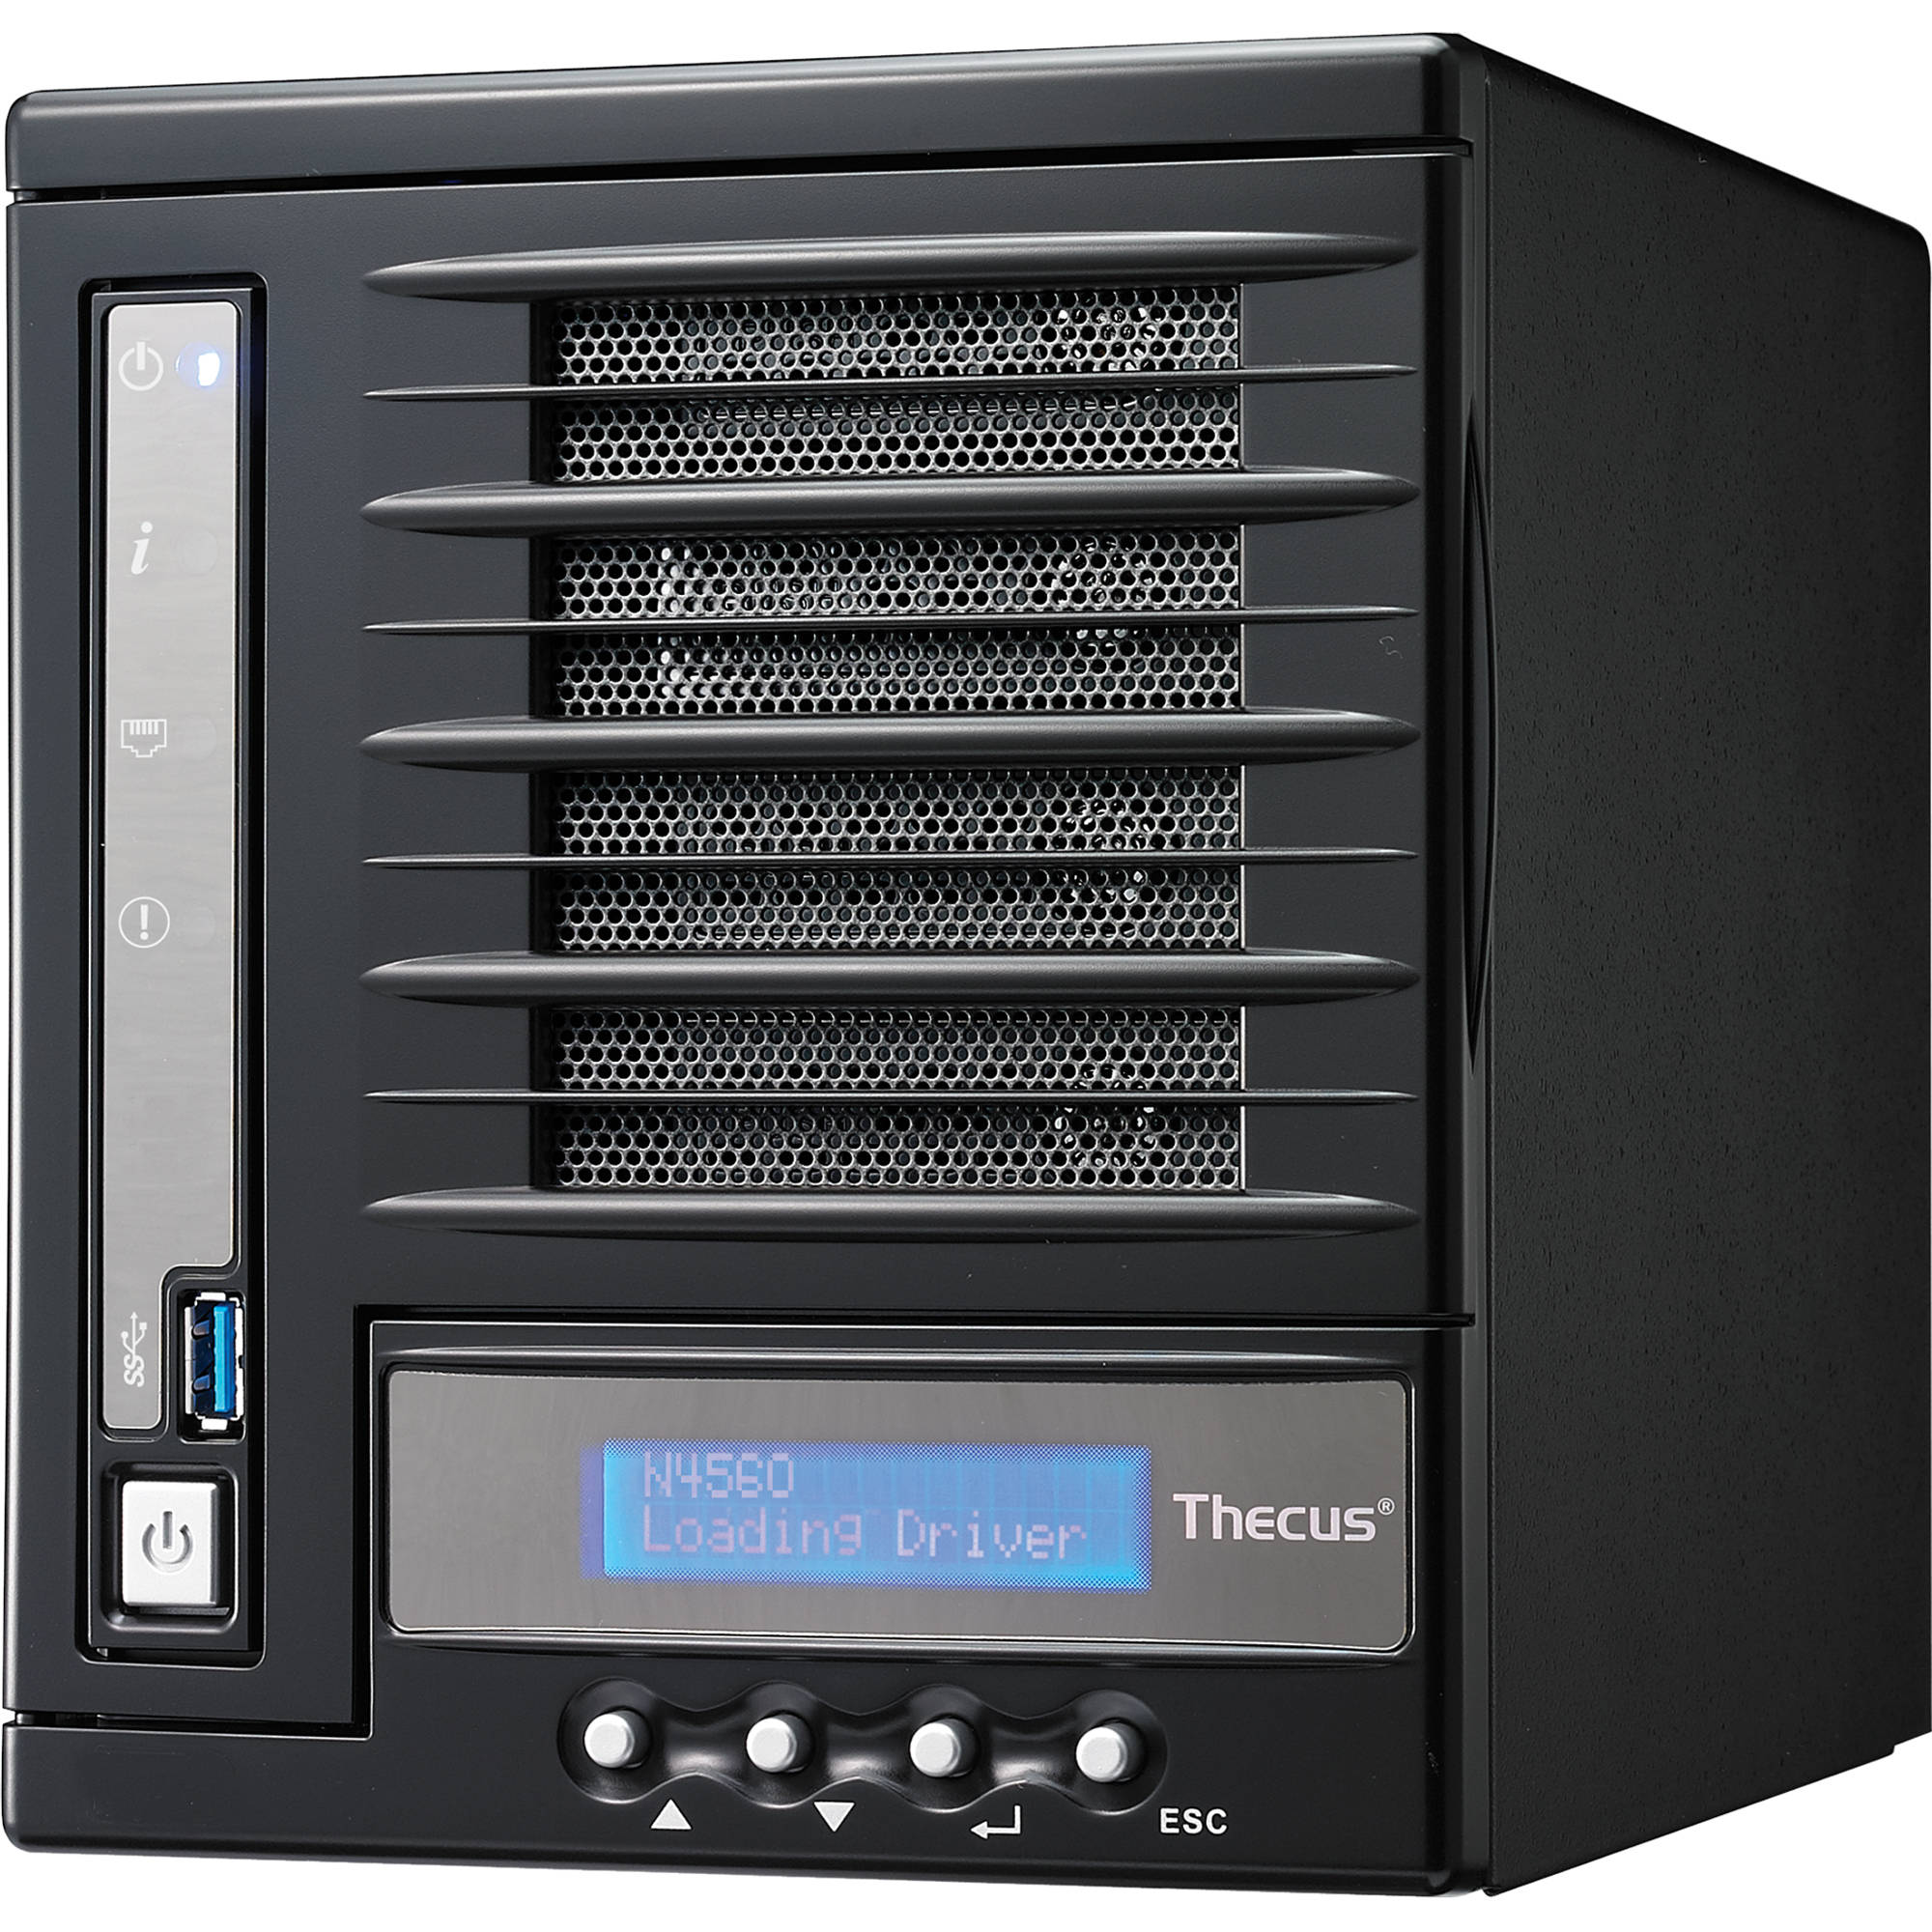 THECUS N4560 NAS SERVER DRIVERS